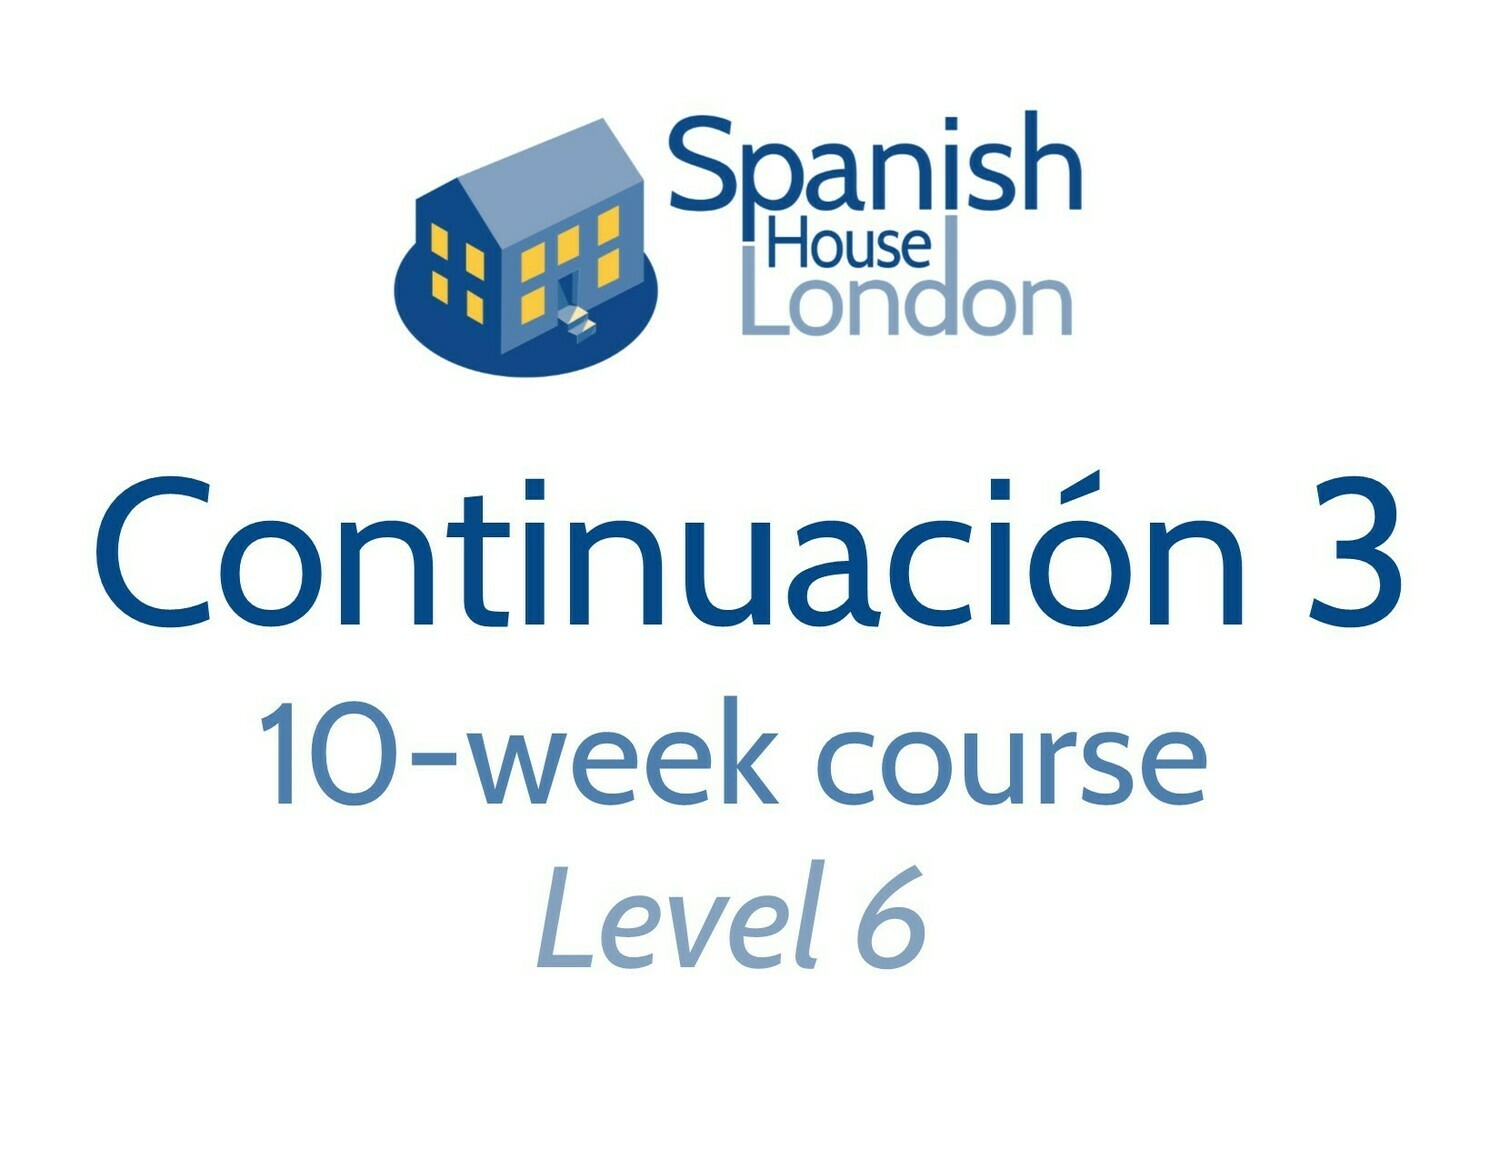 Continuacion 3 Course starting on 19th November at 7.30pm in Clapham North